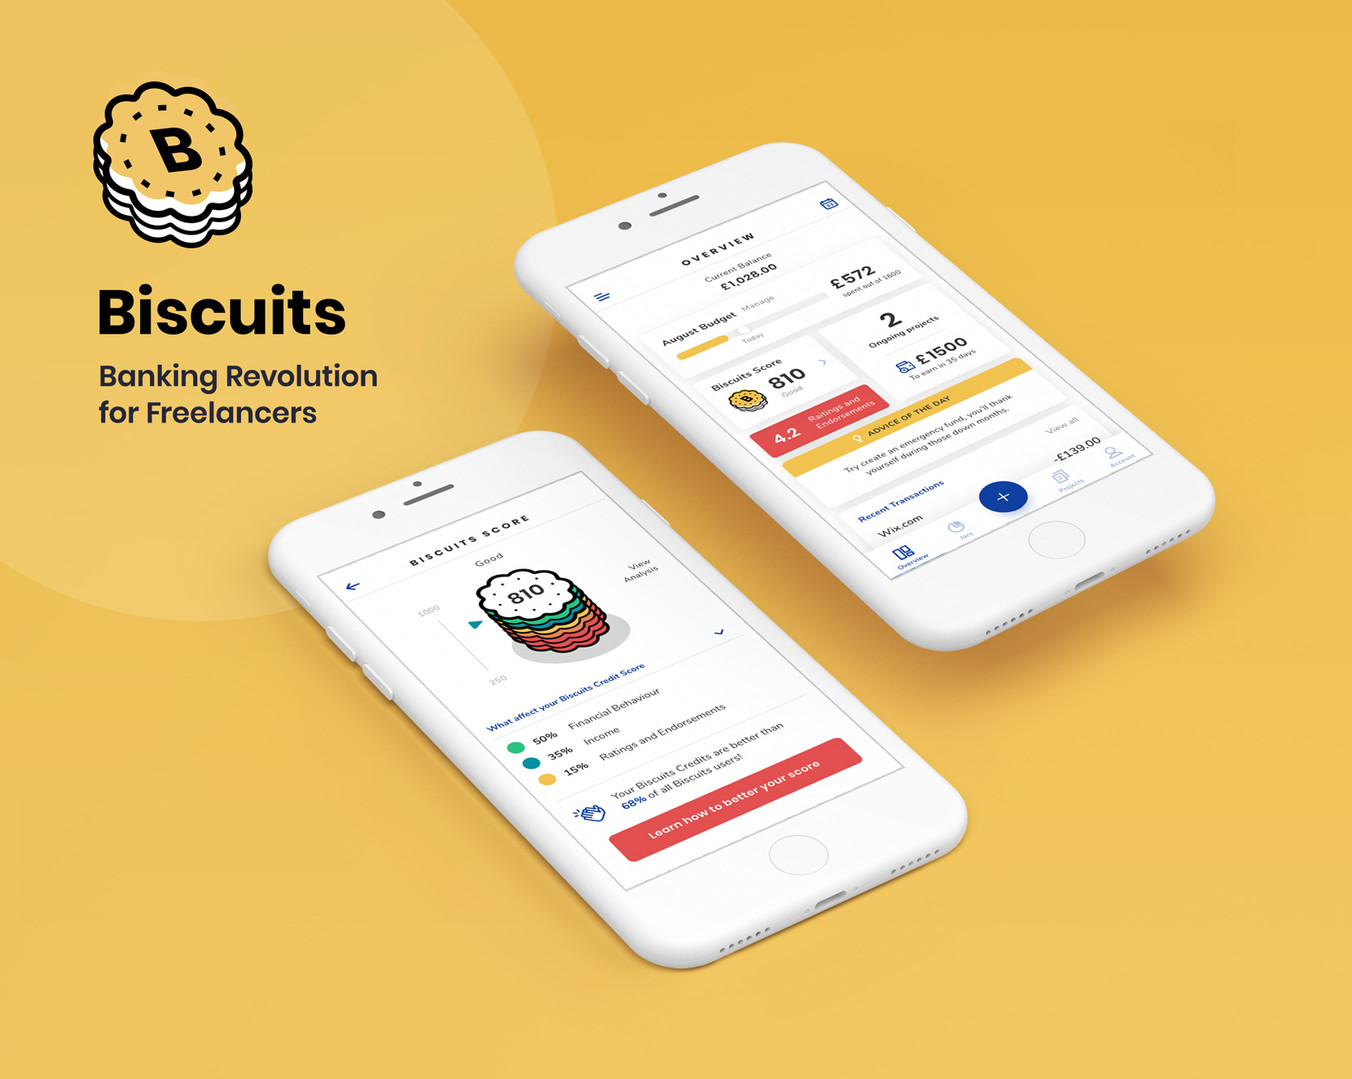 Biscuits – Banking Revolution for Freelancers